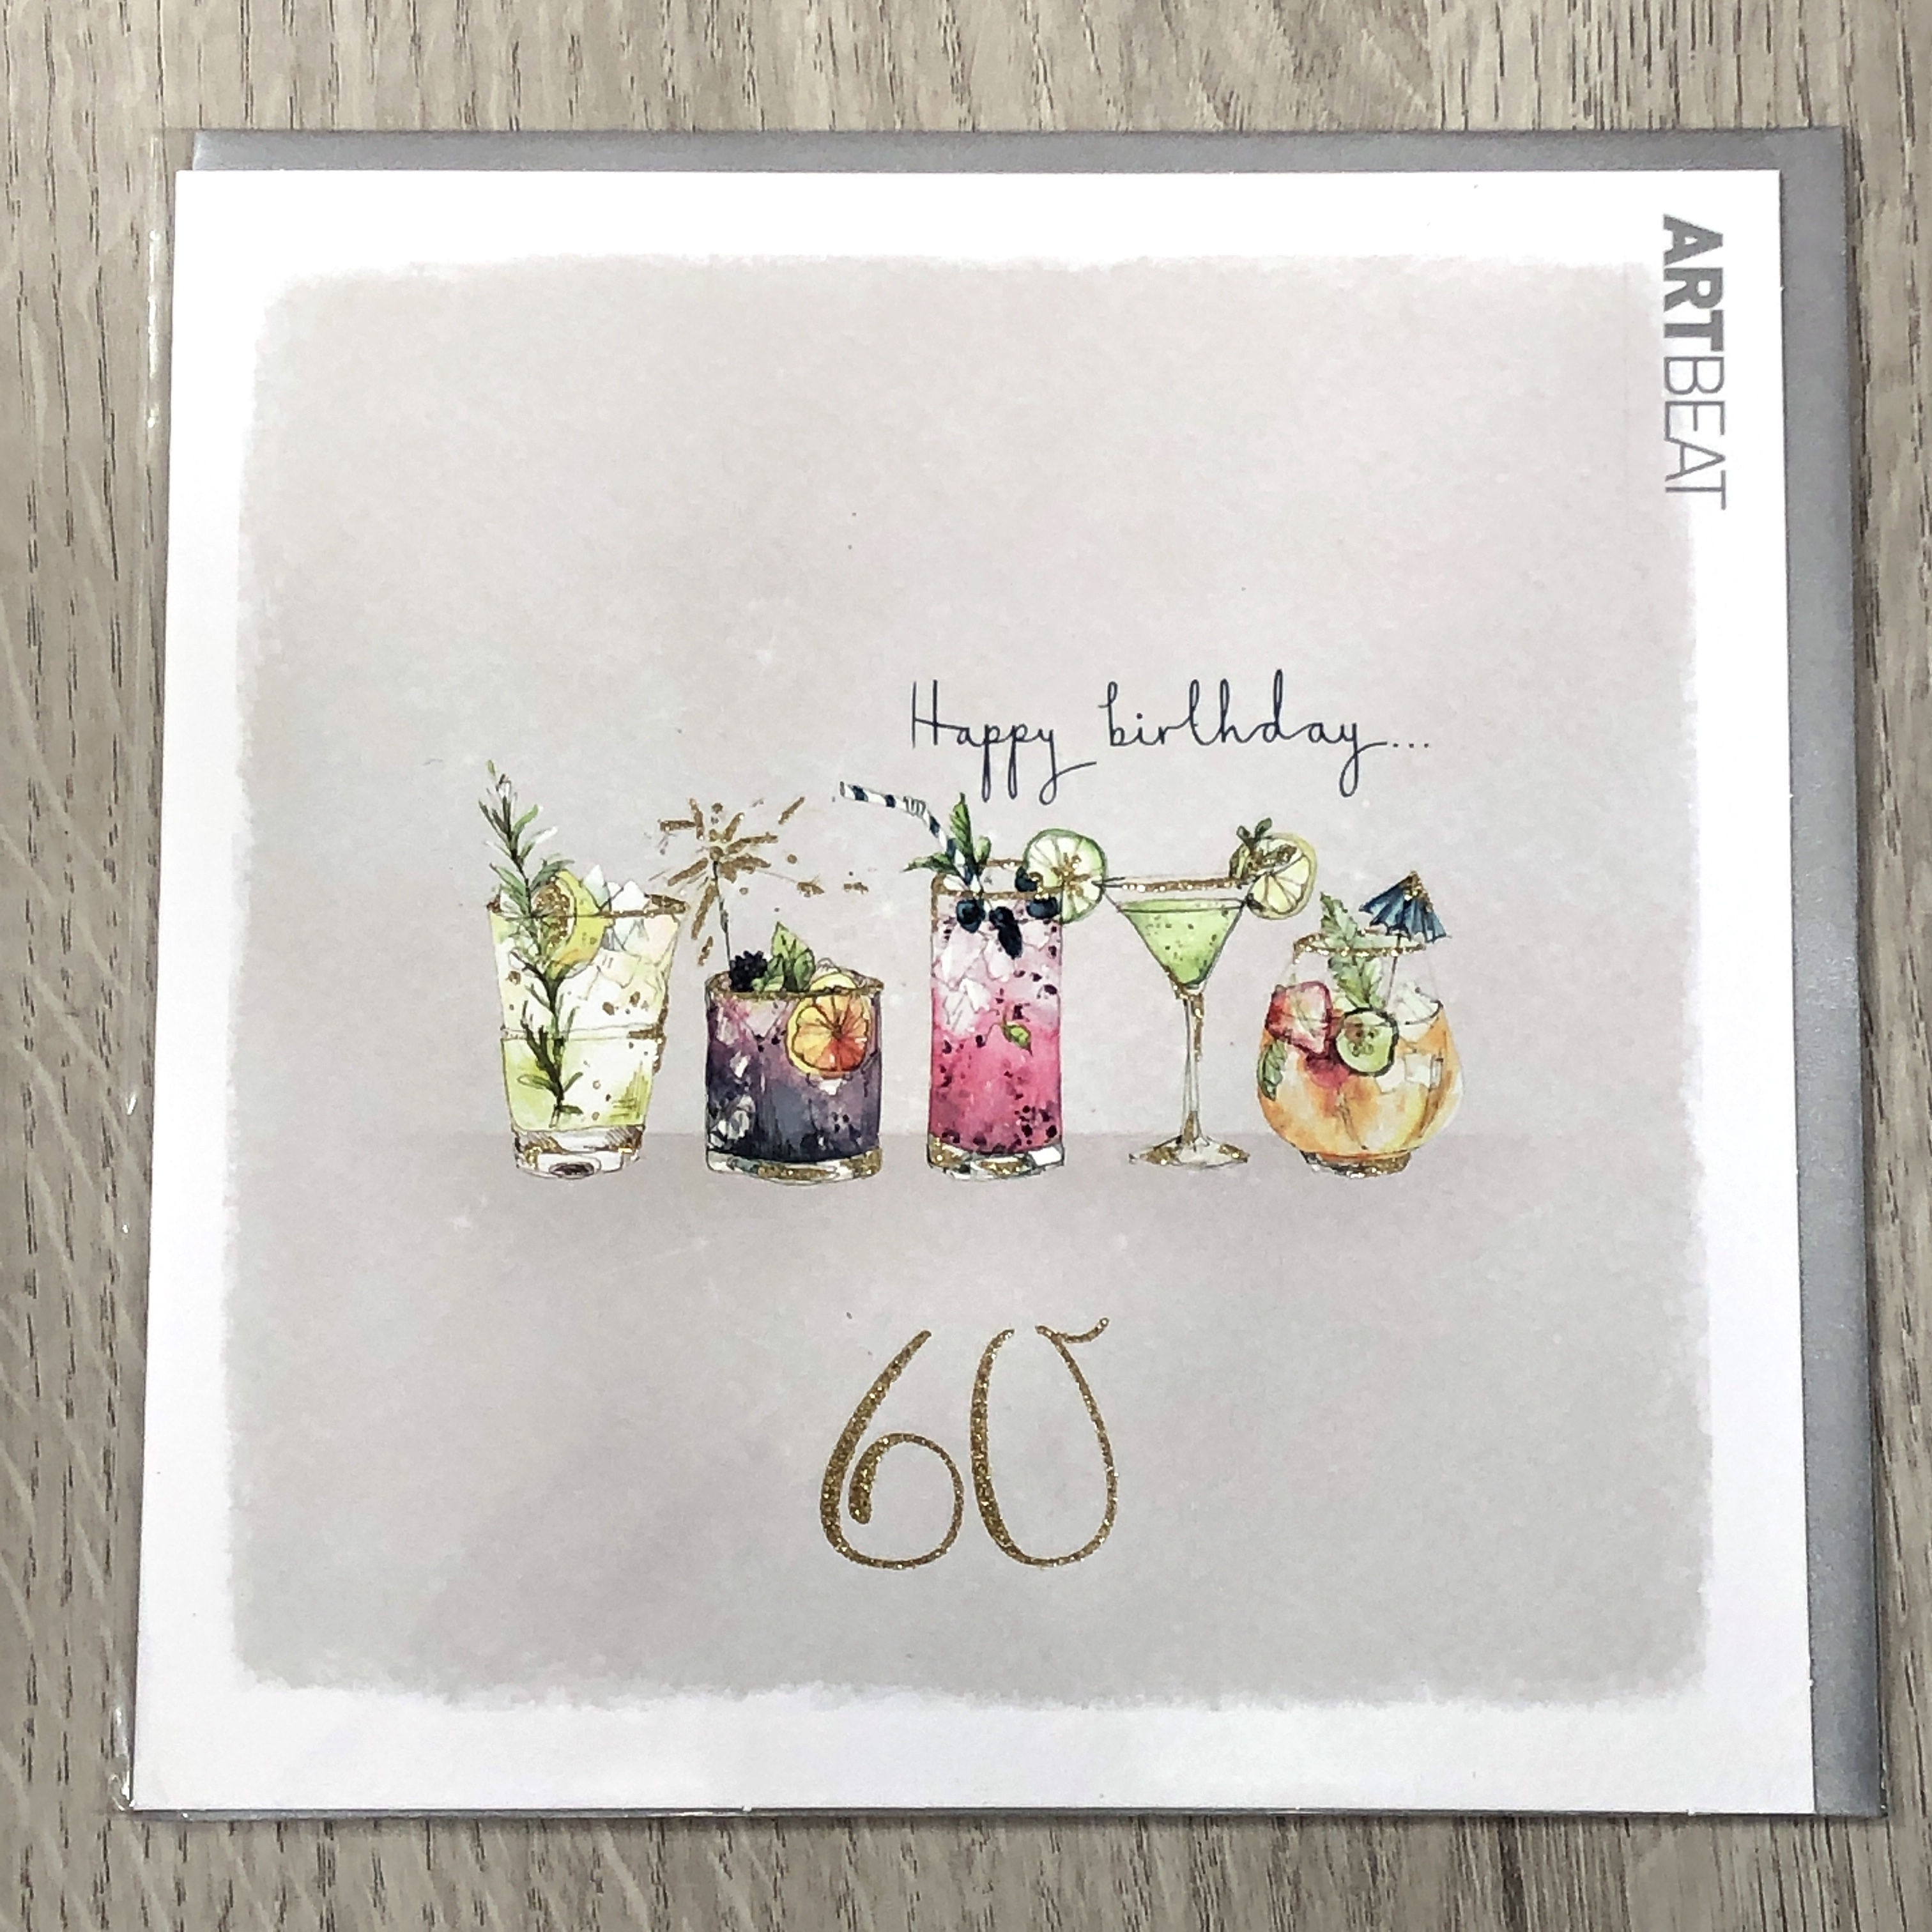 60th birthday card. Drinks party.